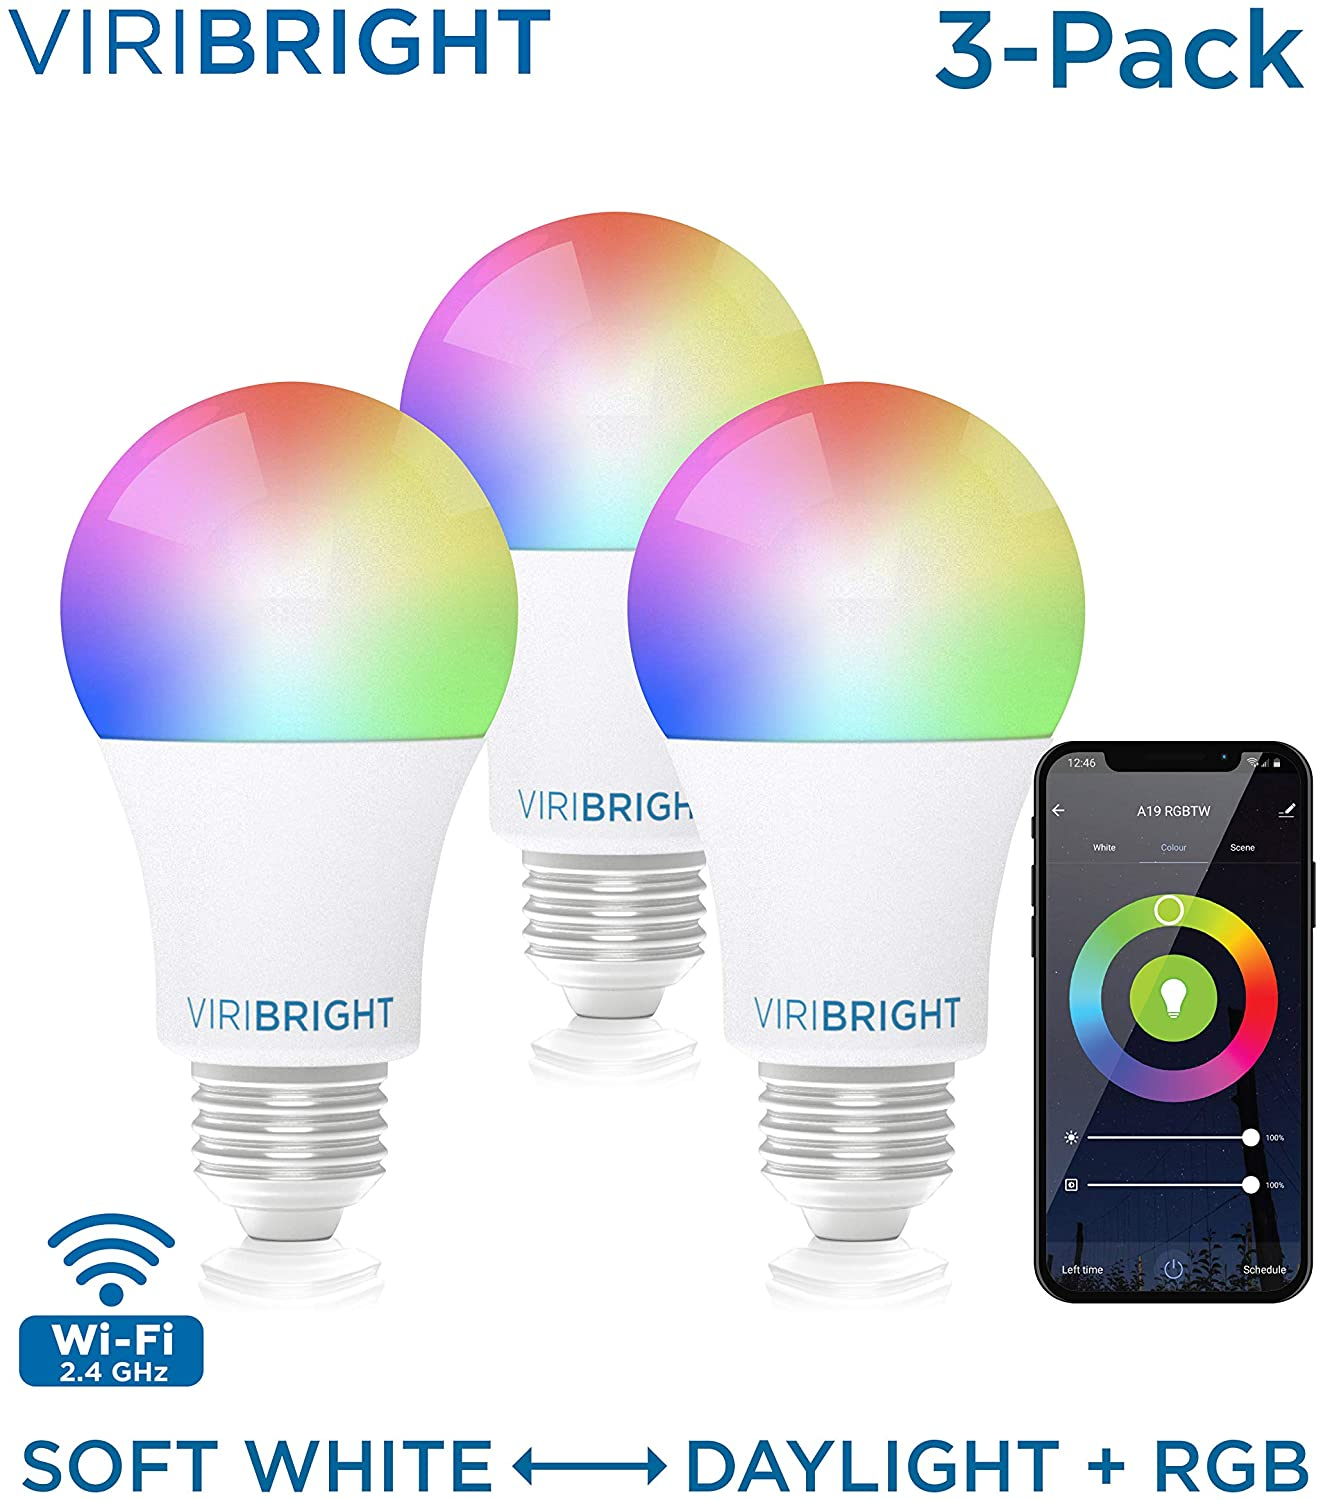 Viribright Smart LED Light Bulb E26, A19 RGBW WiFi Dimmable Multicolor LED Lights, 2700K to 5000K + RGBW, 60W Equivalent (9.5W Actual), No Hub Required, Easy Set up, 3 Pack